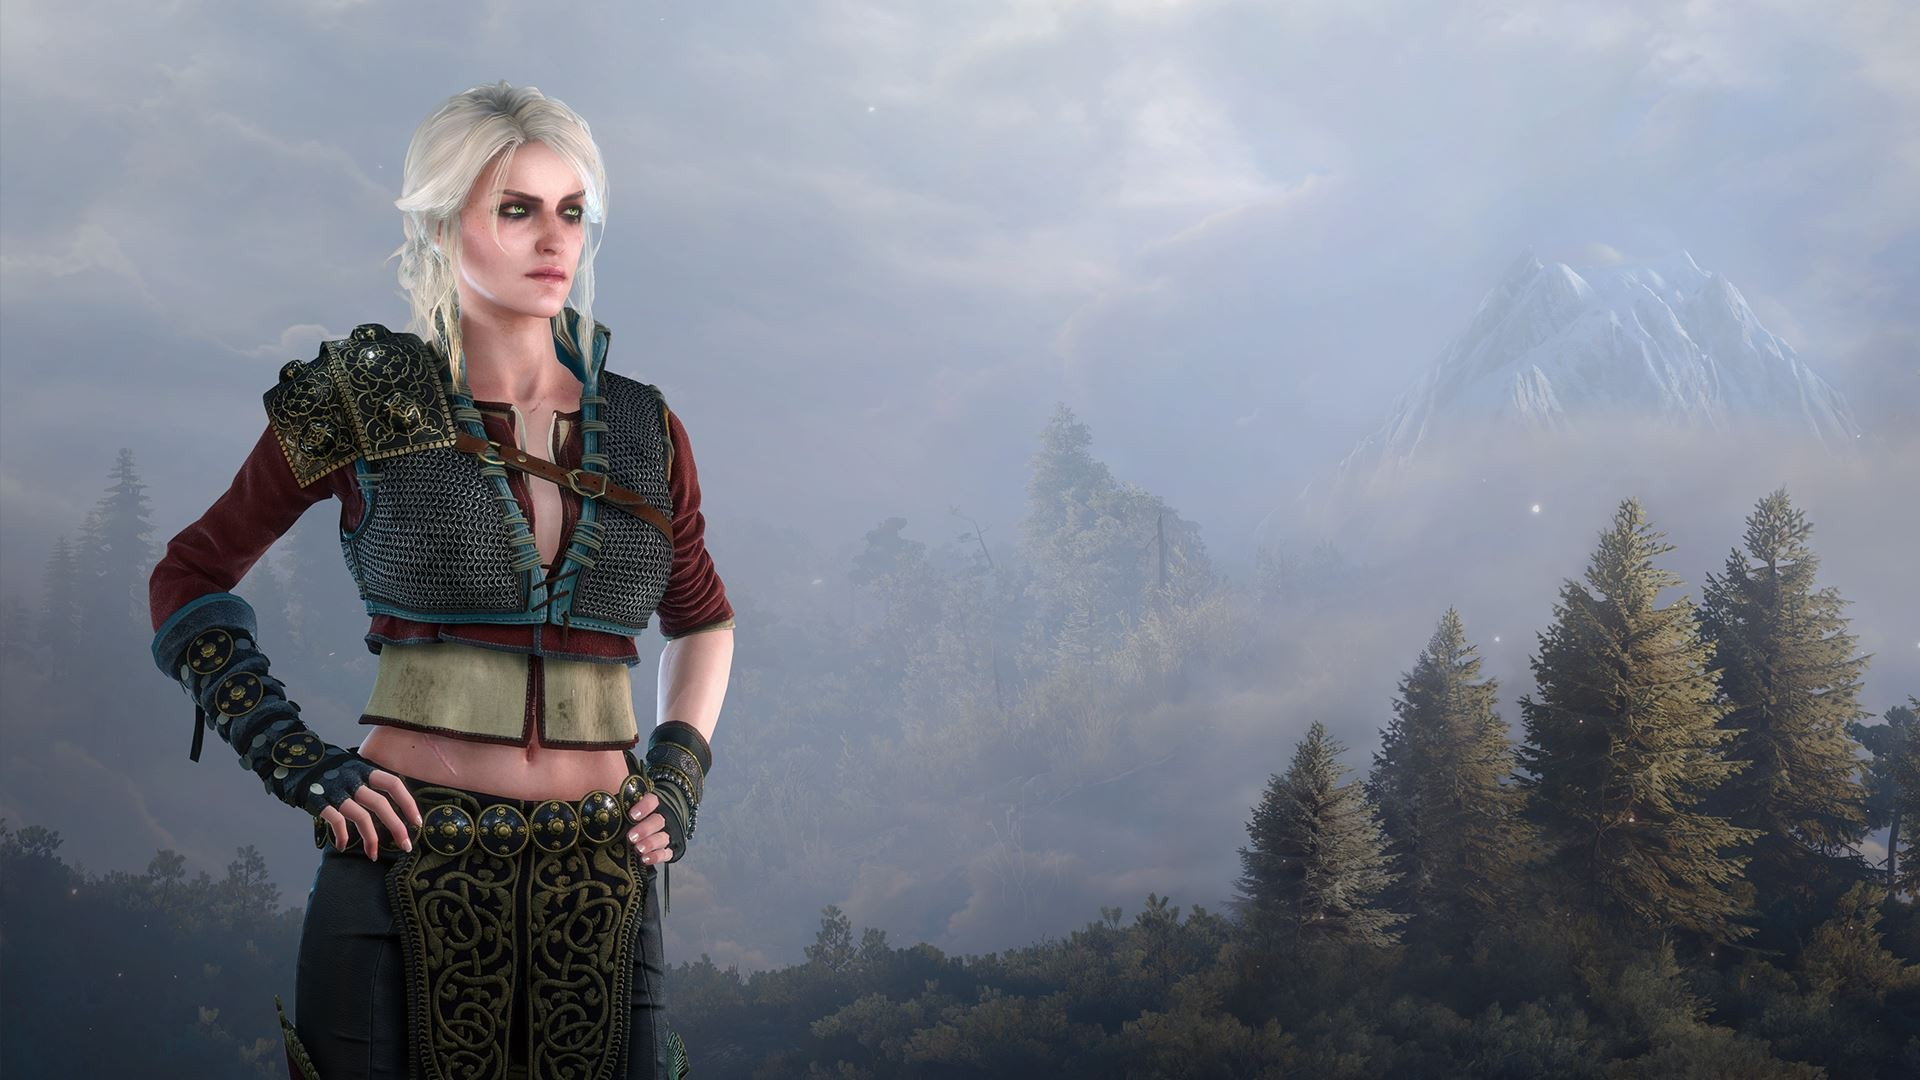 Download Witcher HD Wallpapers TechJeep